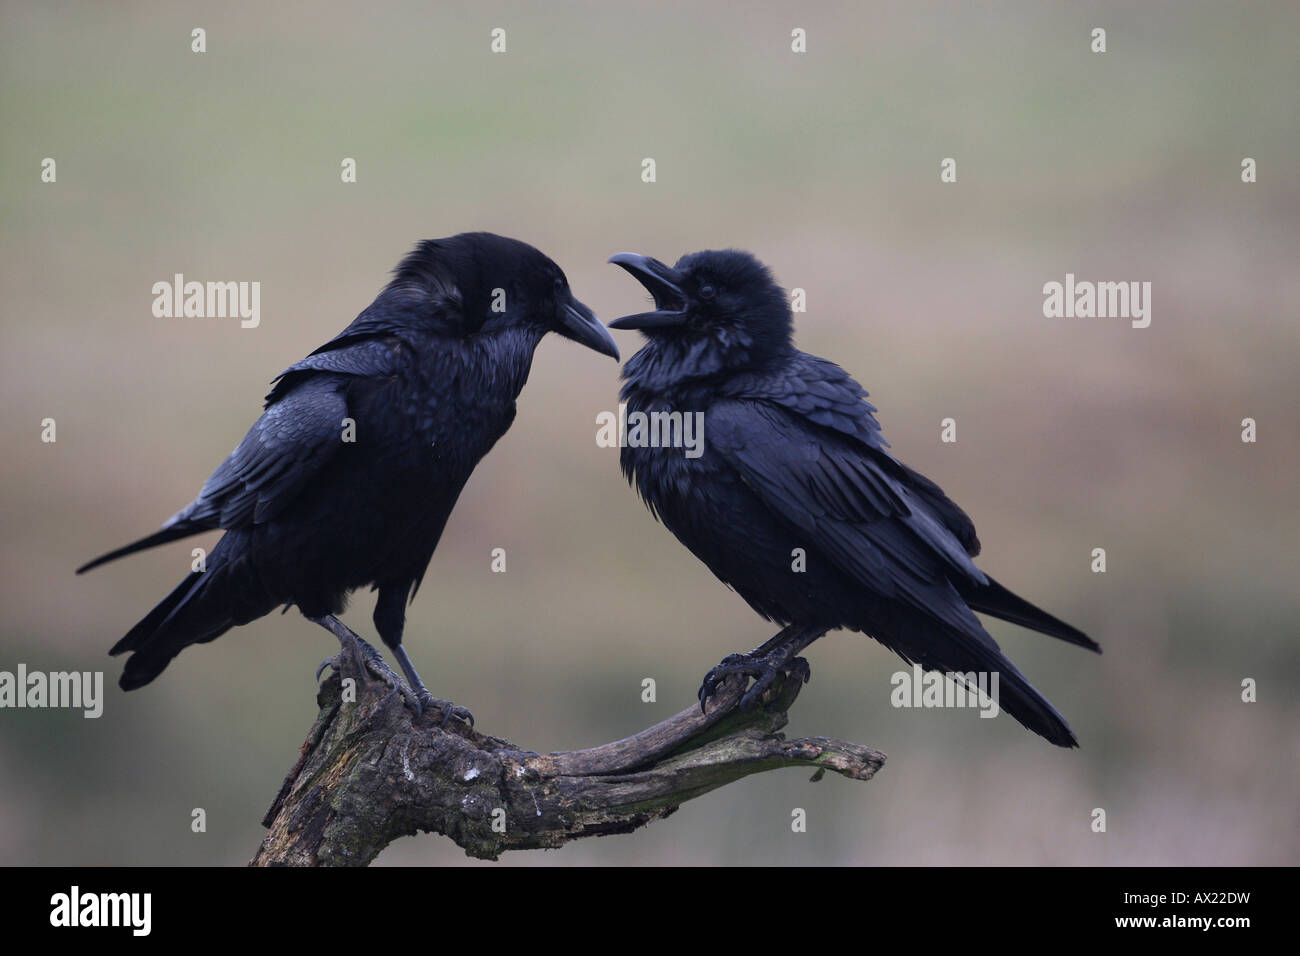 Common or Northern Ravens (Corvus corax), mating behavior Stock Photo